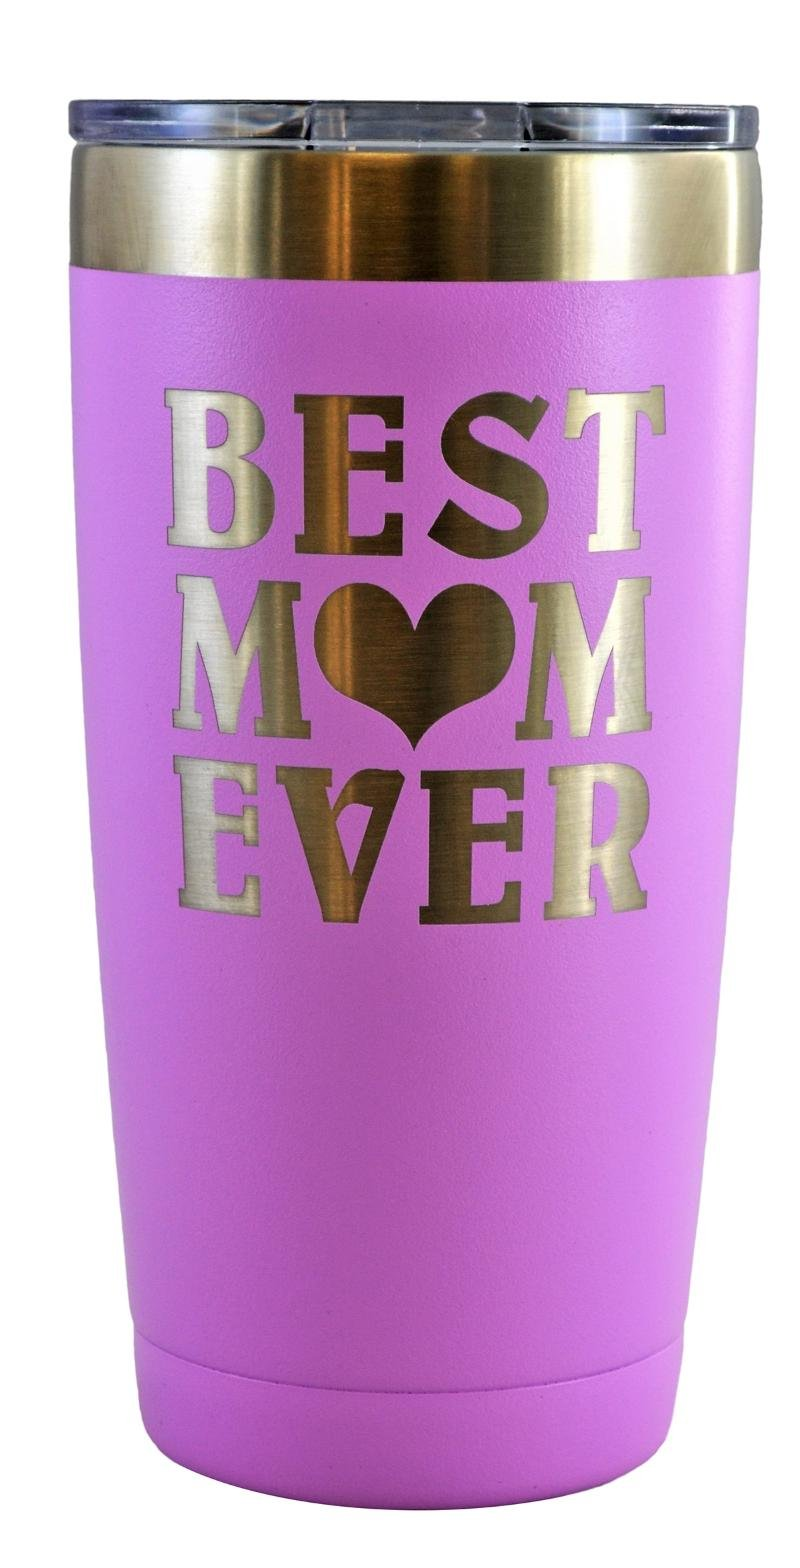 MOM GIFT – Engraved BEST MOM EVER Stainless Steel Polar Camel Tumbler 20 oz Vacuum Insulated Large Travel Coffee Mug Hot & Cold Drinks Birthday Christmas Mothers Day Beach Pool Party (Light Purple)